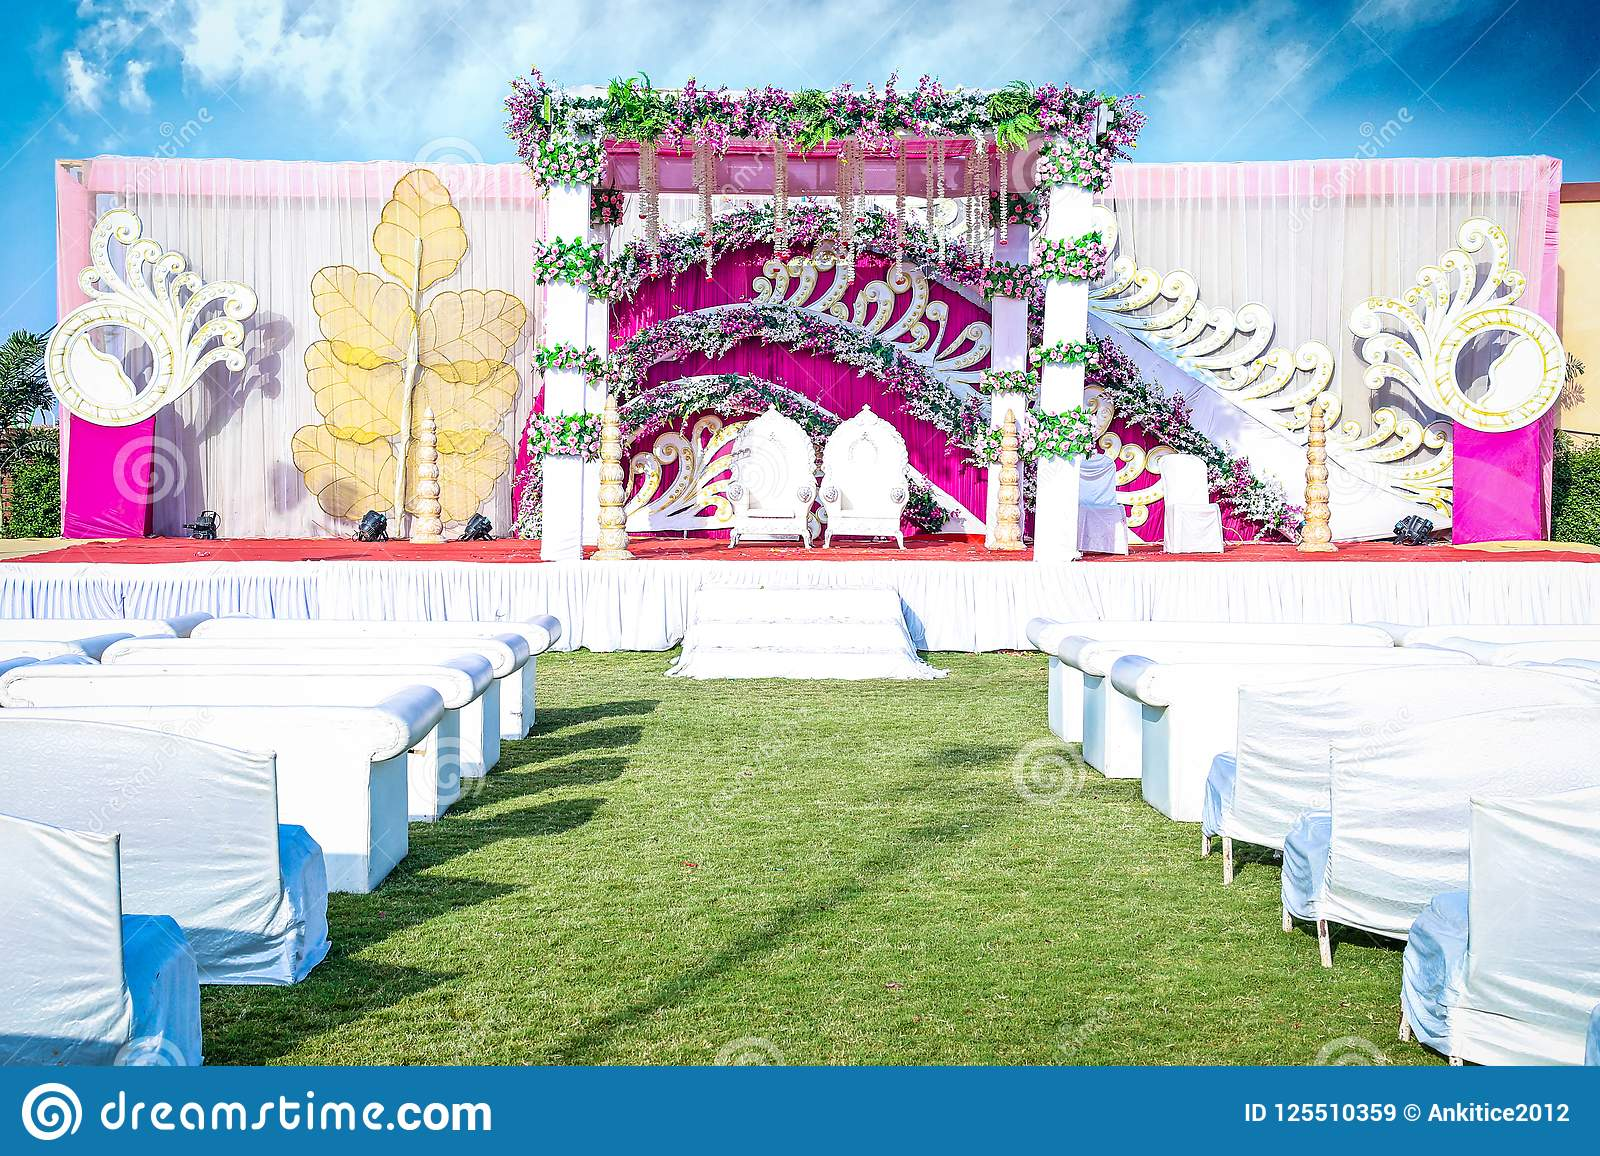 Indian Wedding Event Mandap Decoration Ideas For Marriage Ceremony